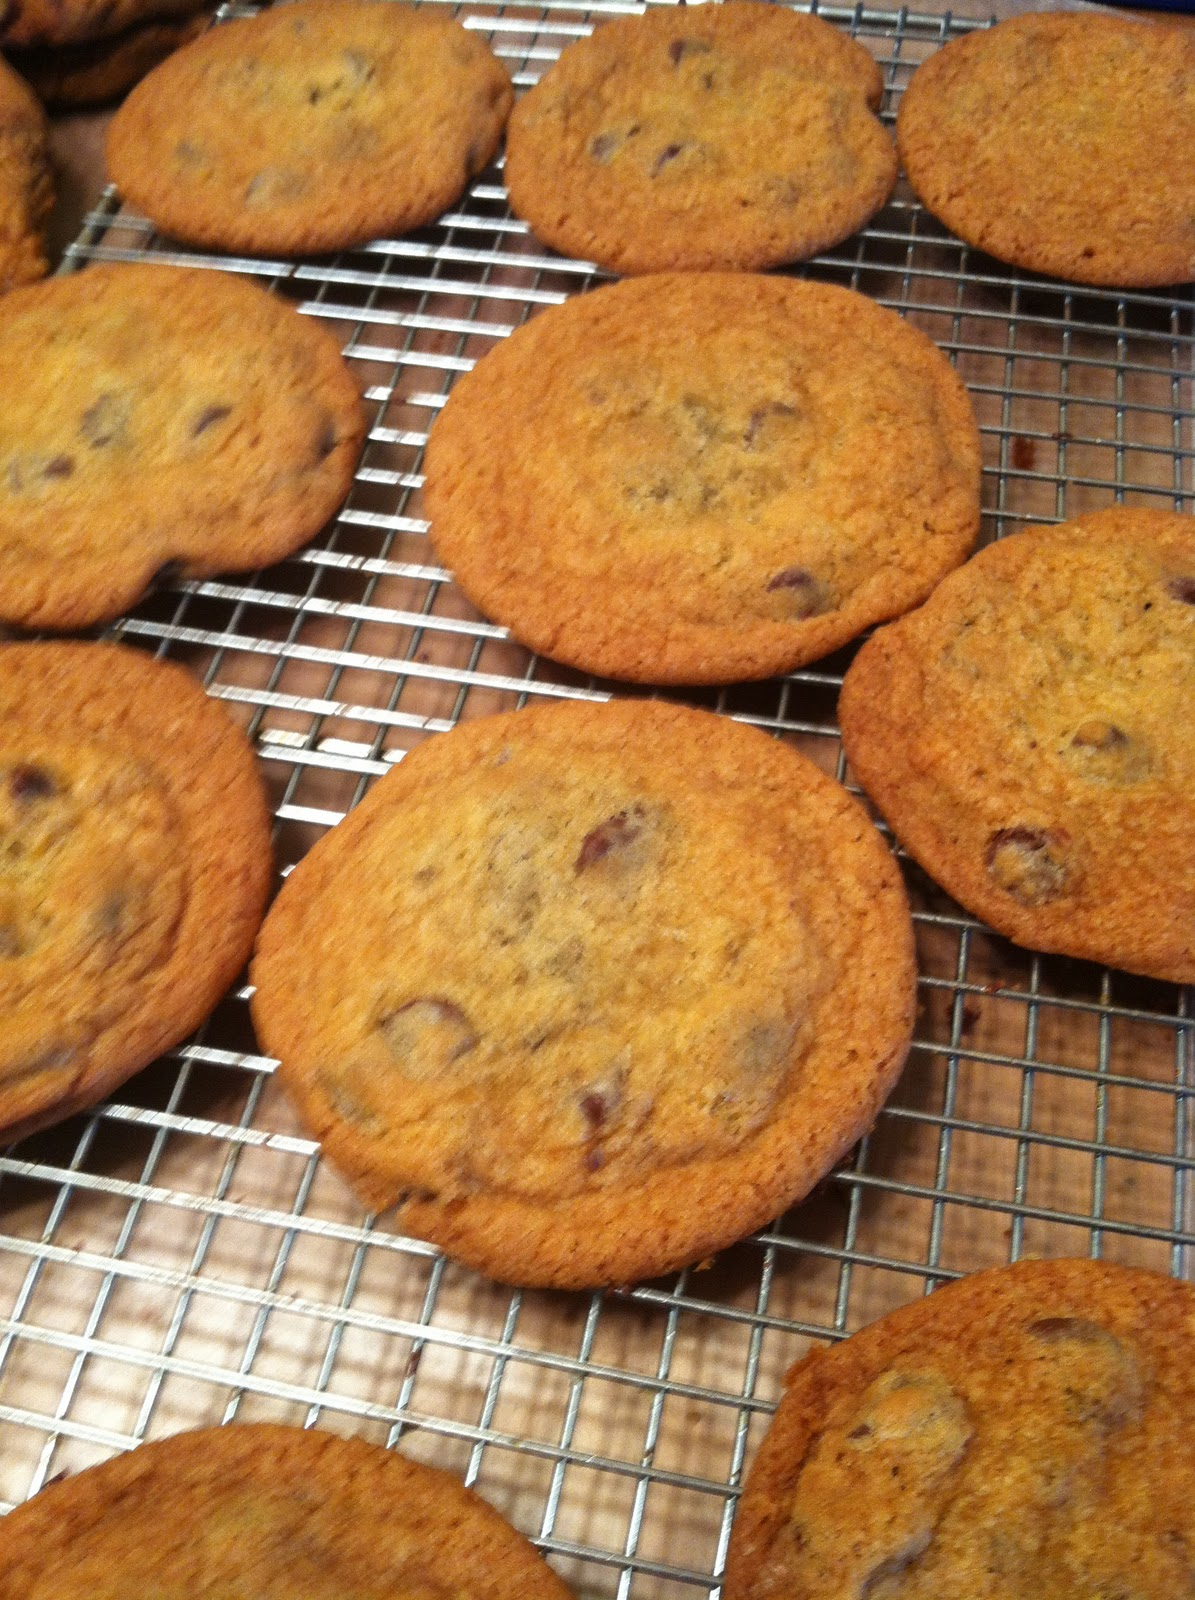 I also decided to make a batch of crazy chocolate chip cookies to go along with these. The crazy cookies are Three Chocolate Cookies from Paula Deen.